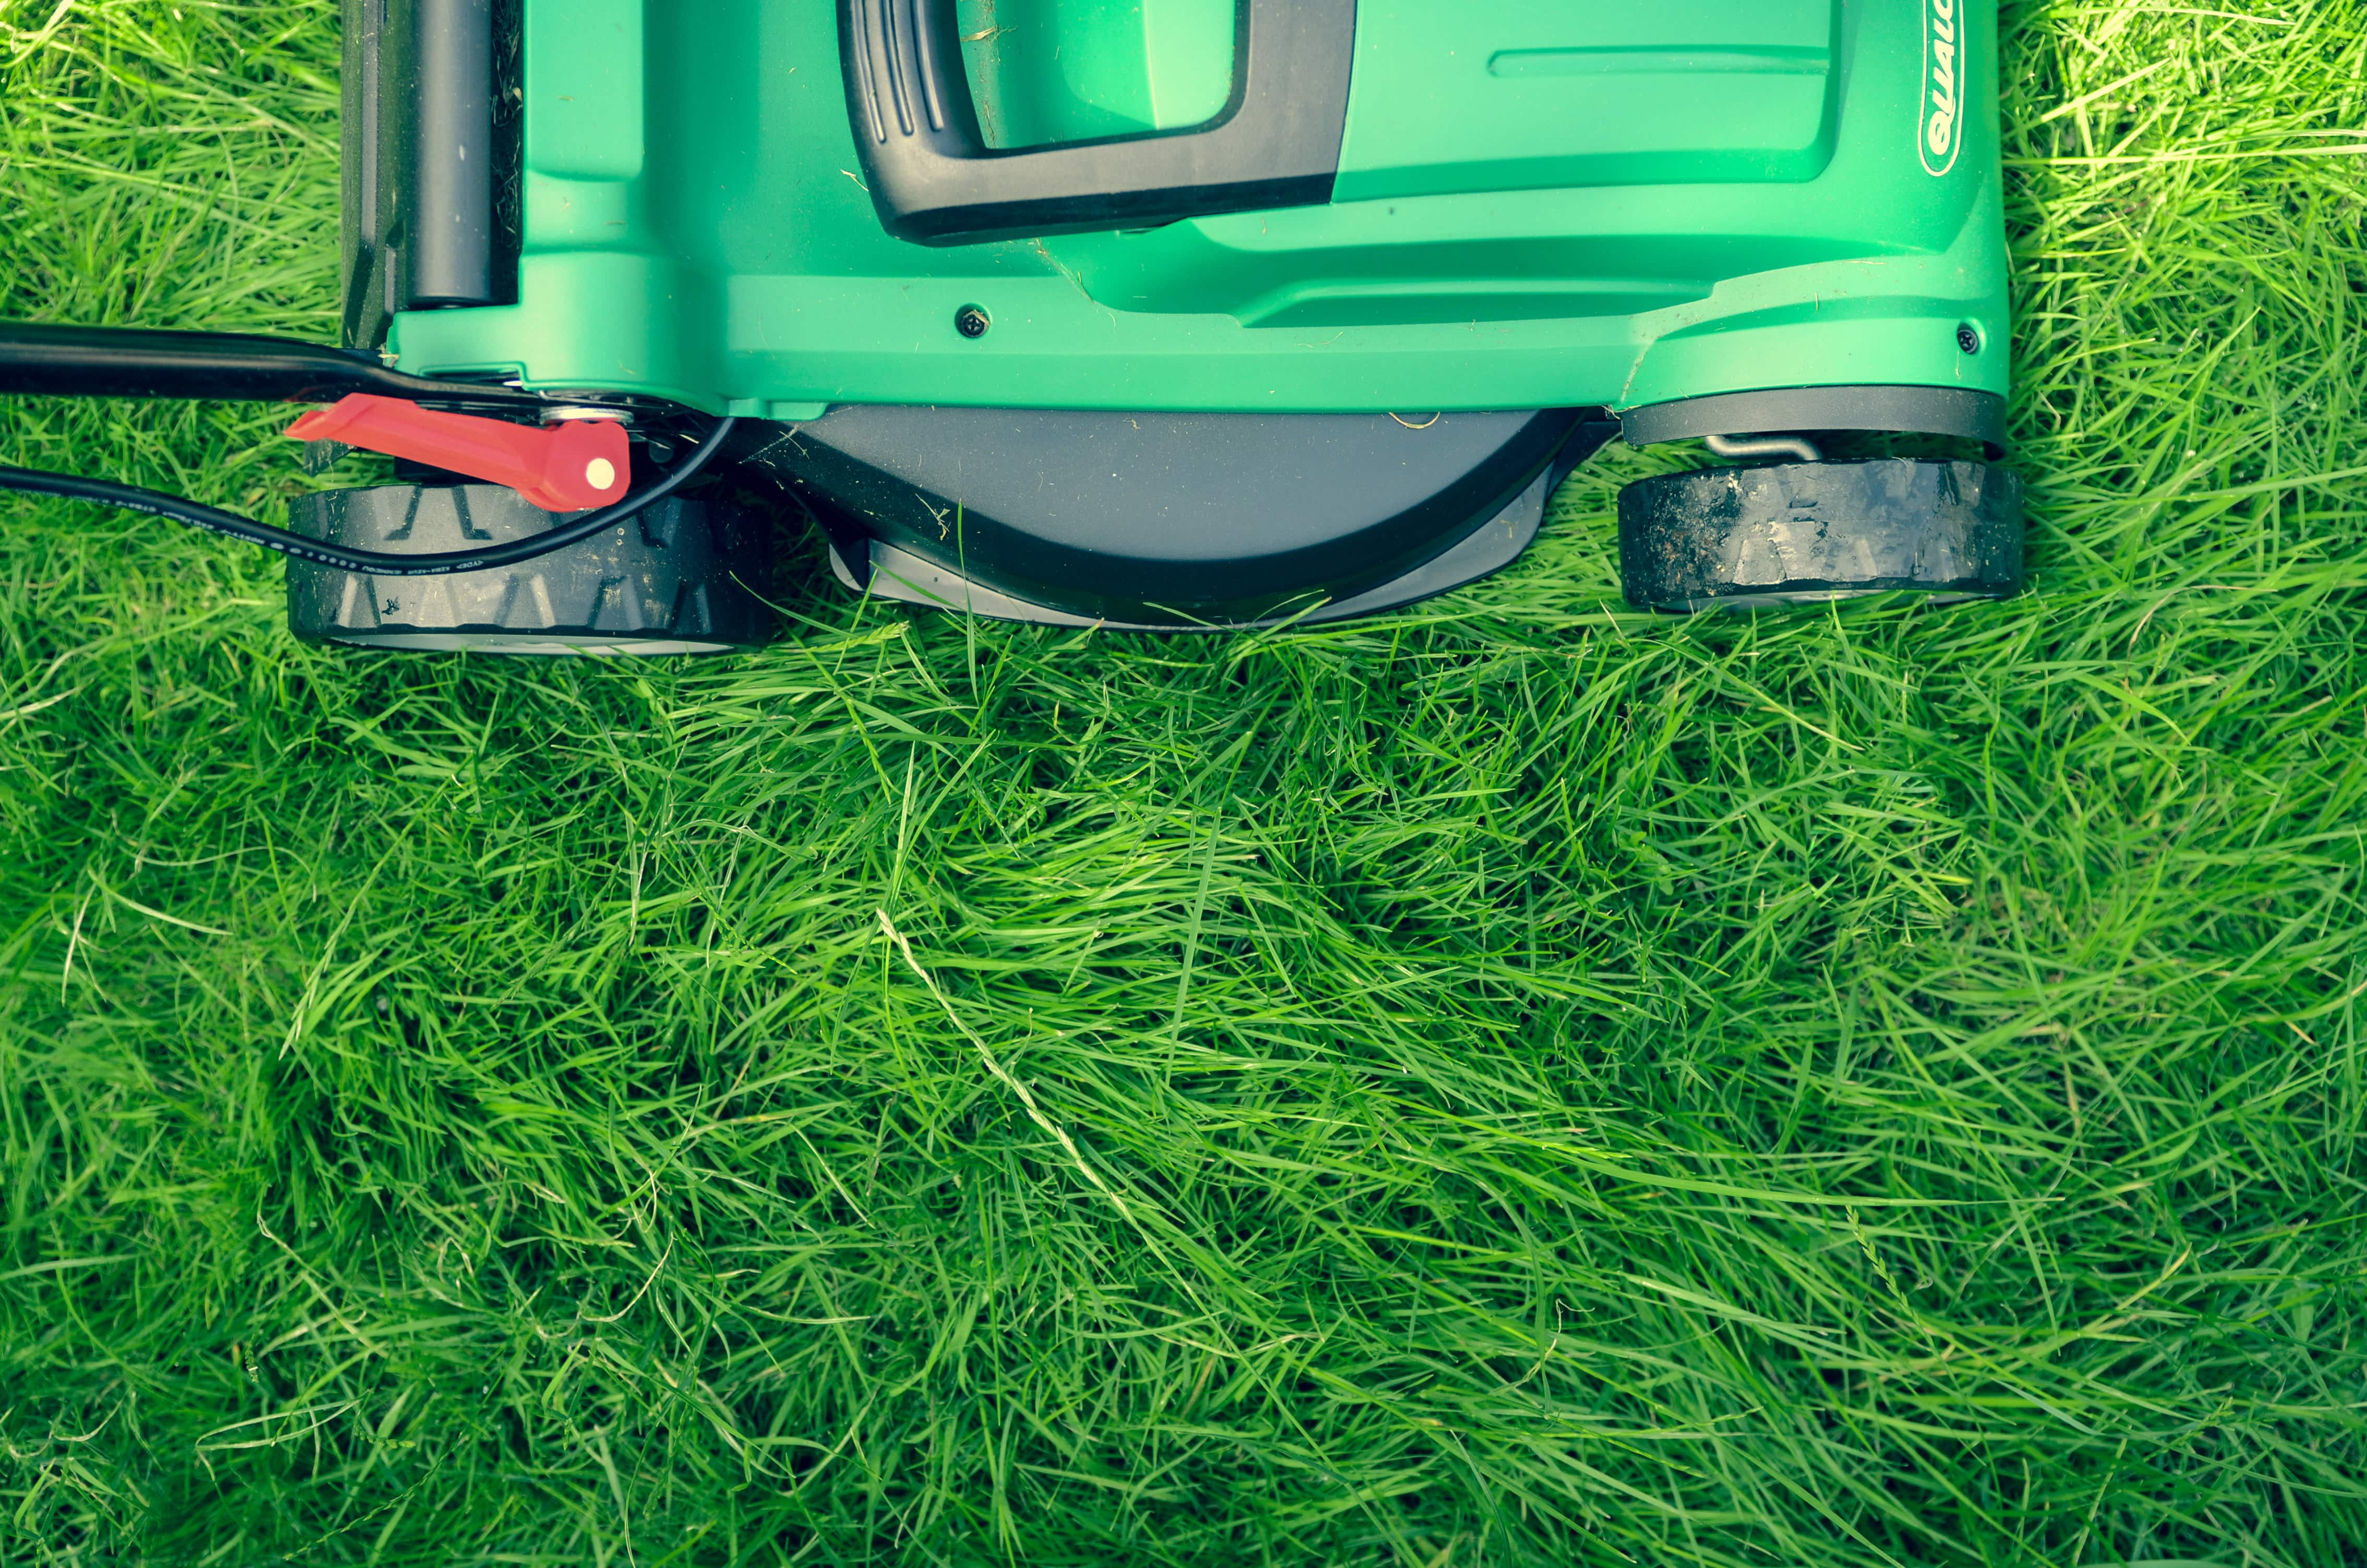 Photo of a lawnmower and grass